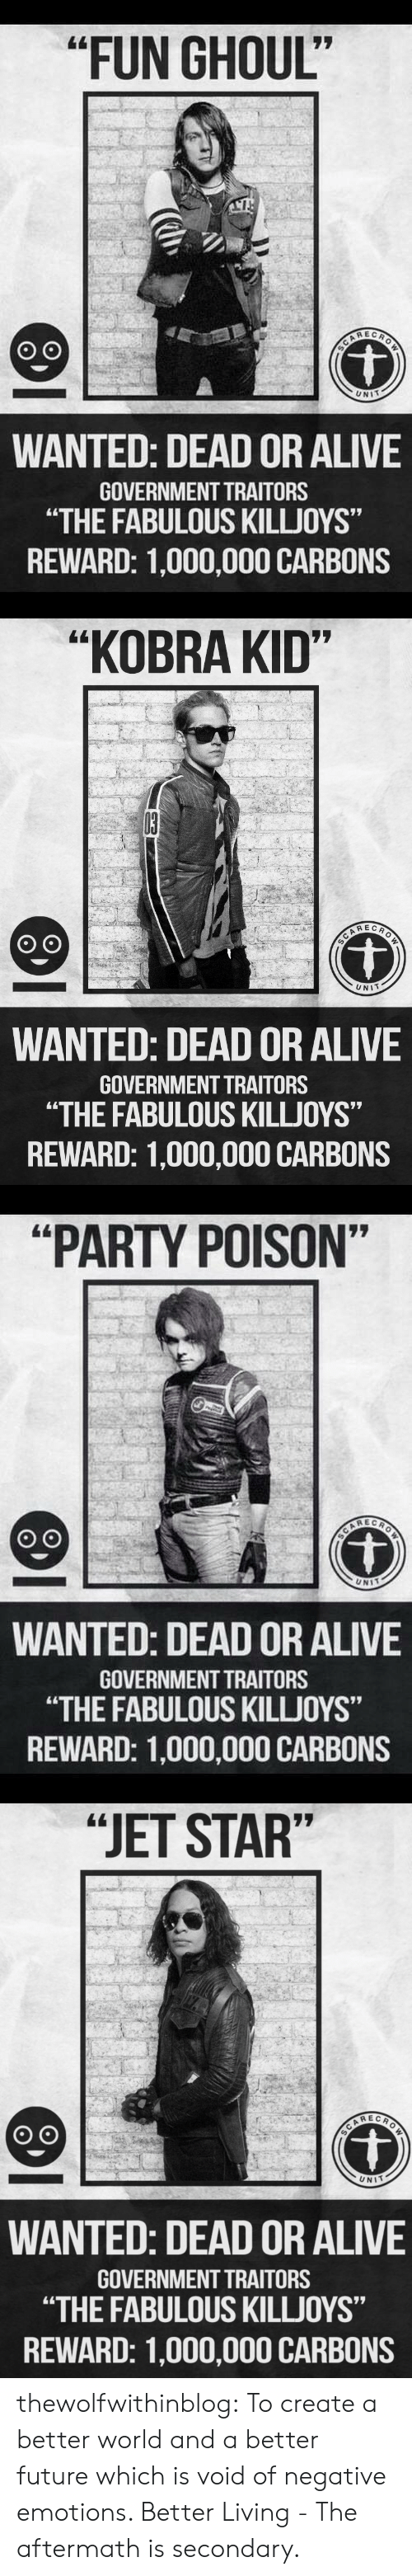 """aftermath: """"FUN GHOUL""""  REC  UNIT  WANTED: DEAD OR ALIVE  GOVERNMENT TRAITORS  """"THE FABULOUS KILLJOYS""""  REWARD: 1,000,000 CARBONS   """"KOBRA KID""""  UNIT  WANTED: DEAD OR ALIVE  GOVERNMENT TRAITORS  """"THE FABULOUS KILLJOYS""""  REWARD: 1,000,000 CARBONS   """"PARTY POISON""""  UNIT  WANTED: DEAD OR ALIVE  GOVERNMENT TRAITORS  """"THE FABULOUS KILLUOYS""""  REWARD: 1,000,000 CARBONS   """"JET STAR""""  UNIT  WANTED: DEAD OR ALIVE  GOVERNMENT TRAITORS  """"THE FABULOUS KILLJOYS""""  REWARD: 1,000,000 CARBONS thewolfwithinblog: To create a better world and a better future which is void of negative emotions.   Better Living - The aftermath is secondary."""